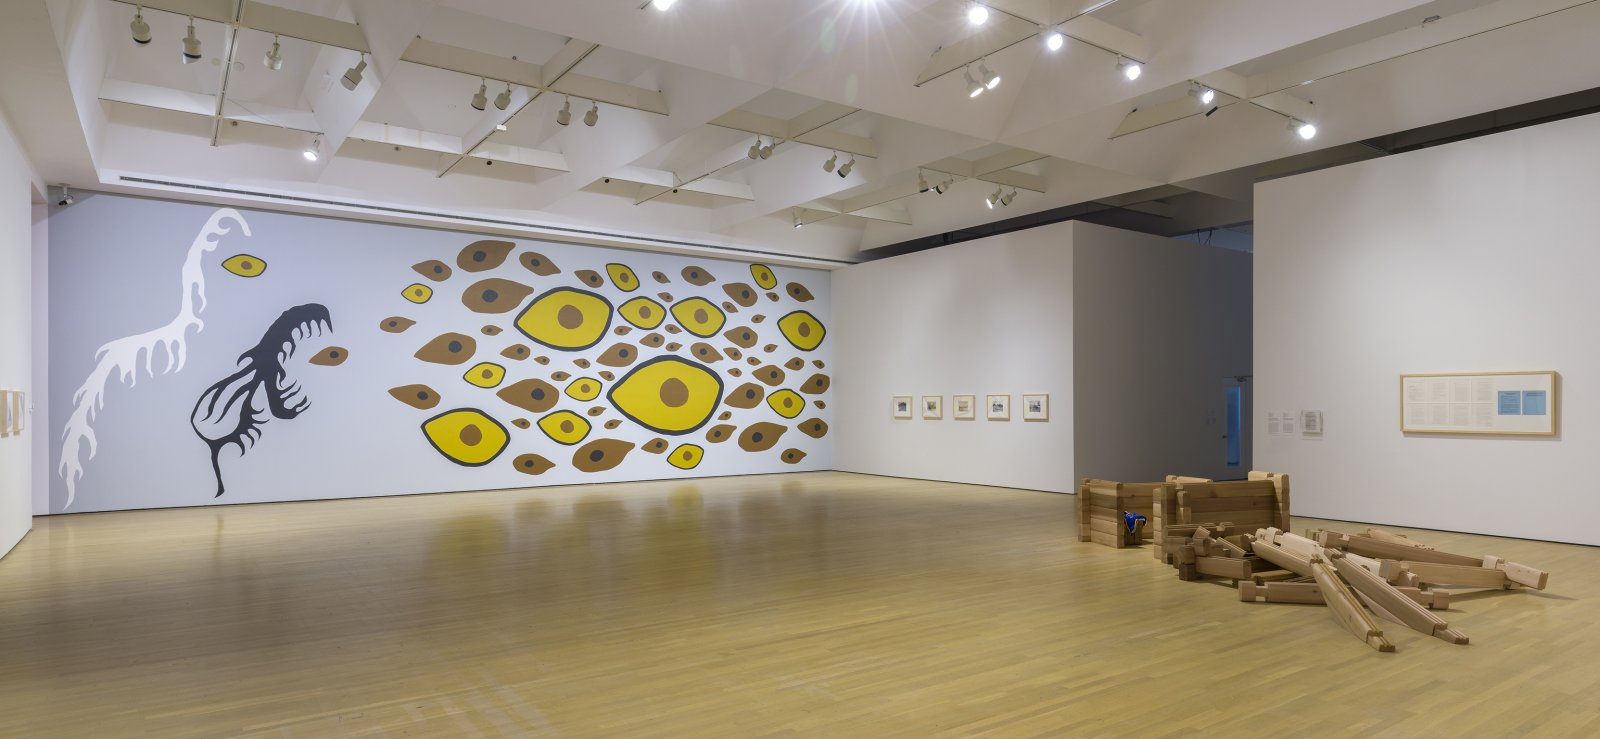 Duane Linklater, Earth Mother Hair, Indian Hair, and Earth Mother Eyes, Indian Eyes, Animal Eyes, 2017, paint on wall, dimensions variable. Installation view, In Search of Expo 67, Musée d'art contemporain de Montréal, 2017